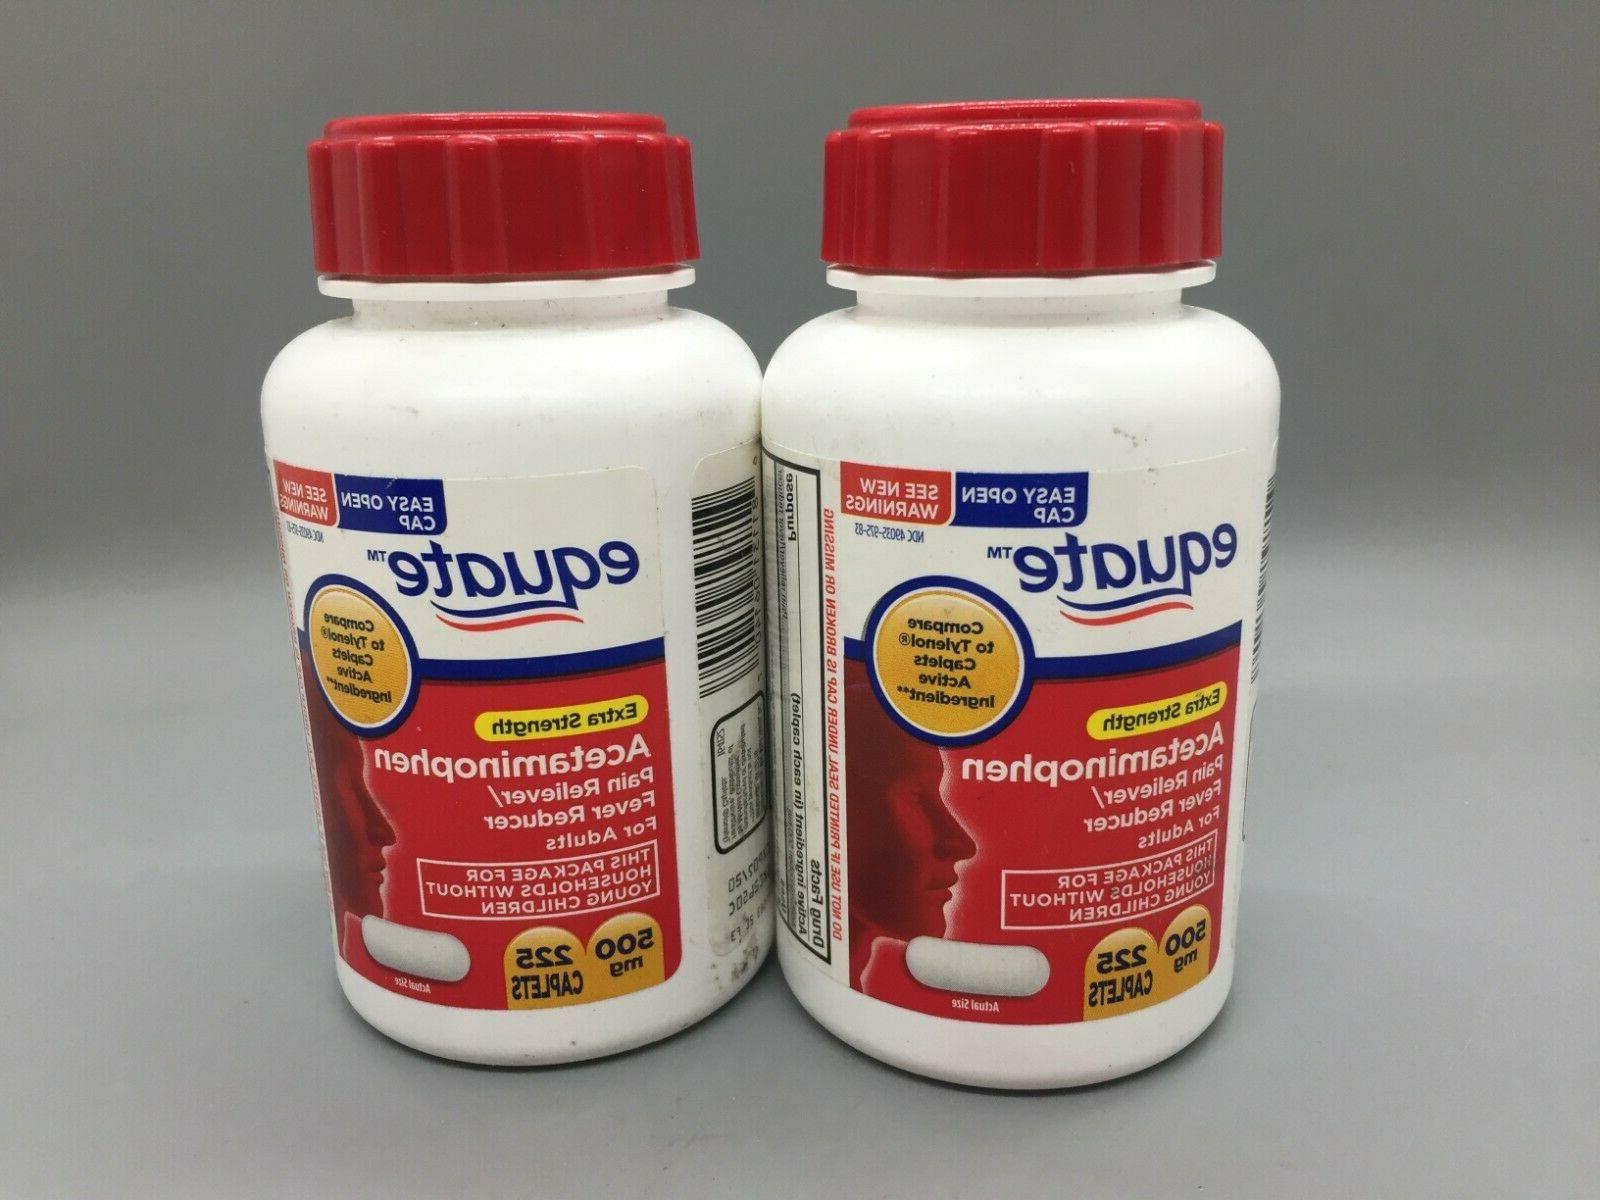 extra strength 500 mg acetaminophen pain relief